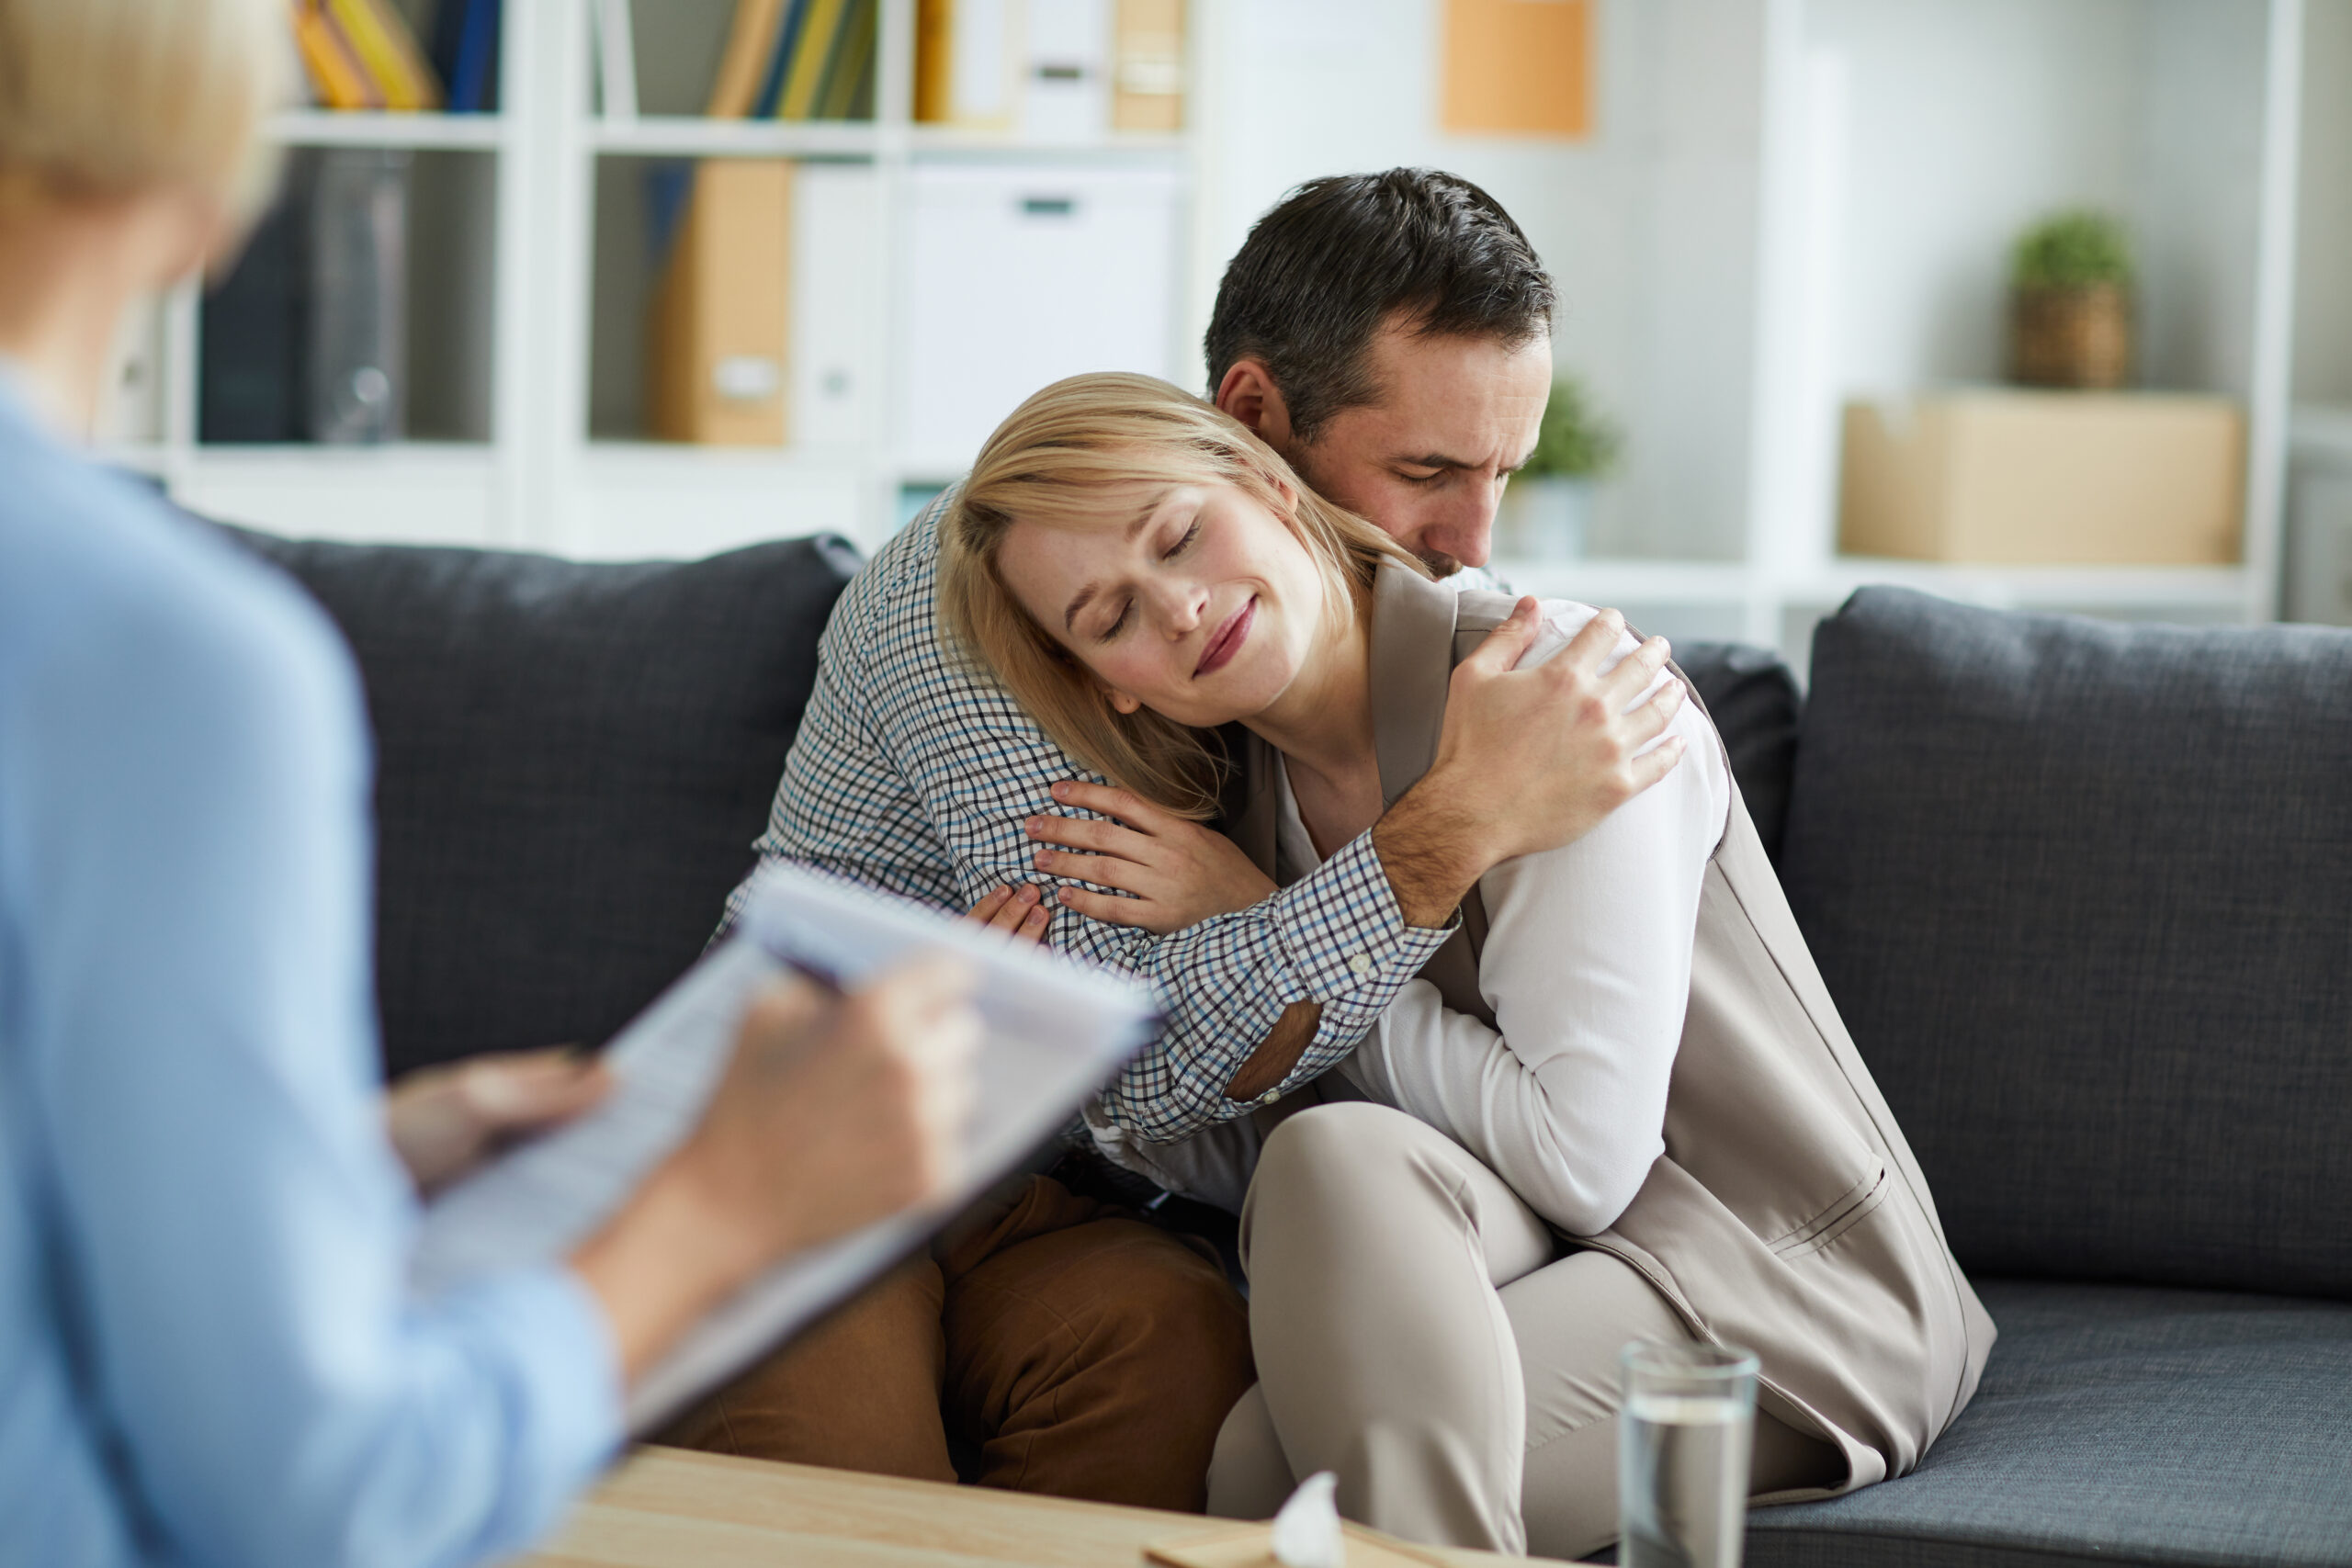 Young couple sitting on couch in embrace after consulting with counselor and solving their problem